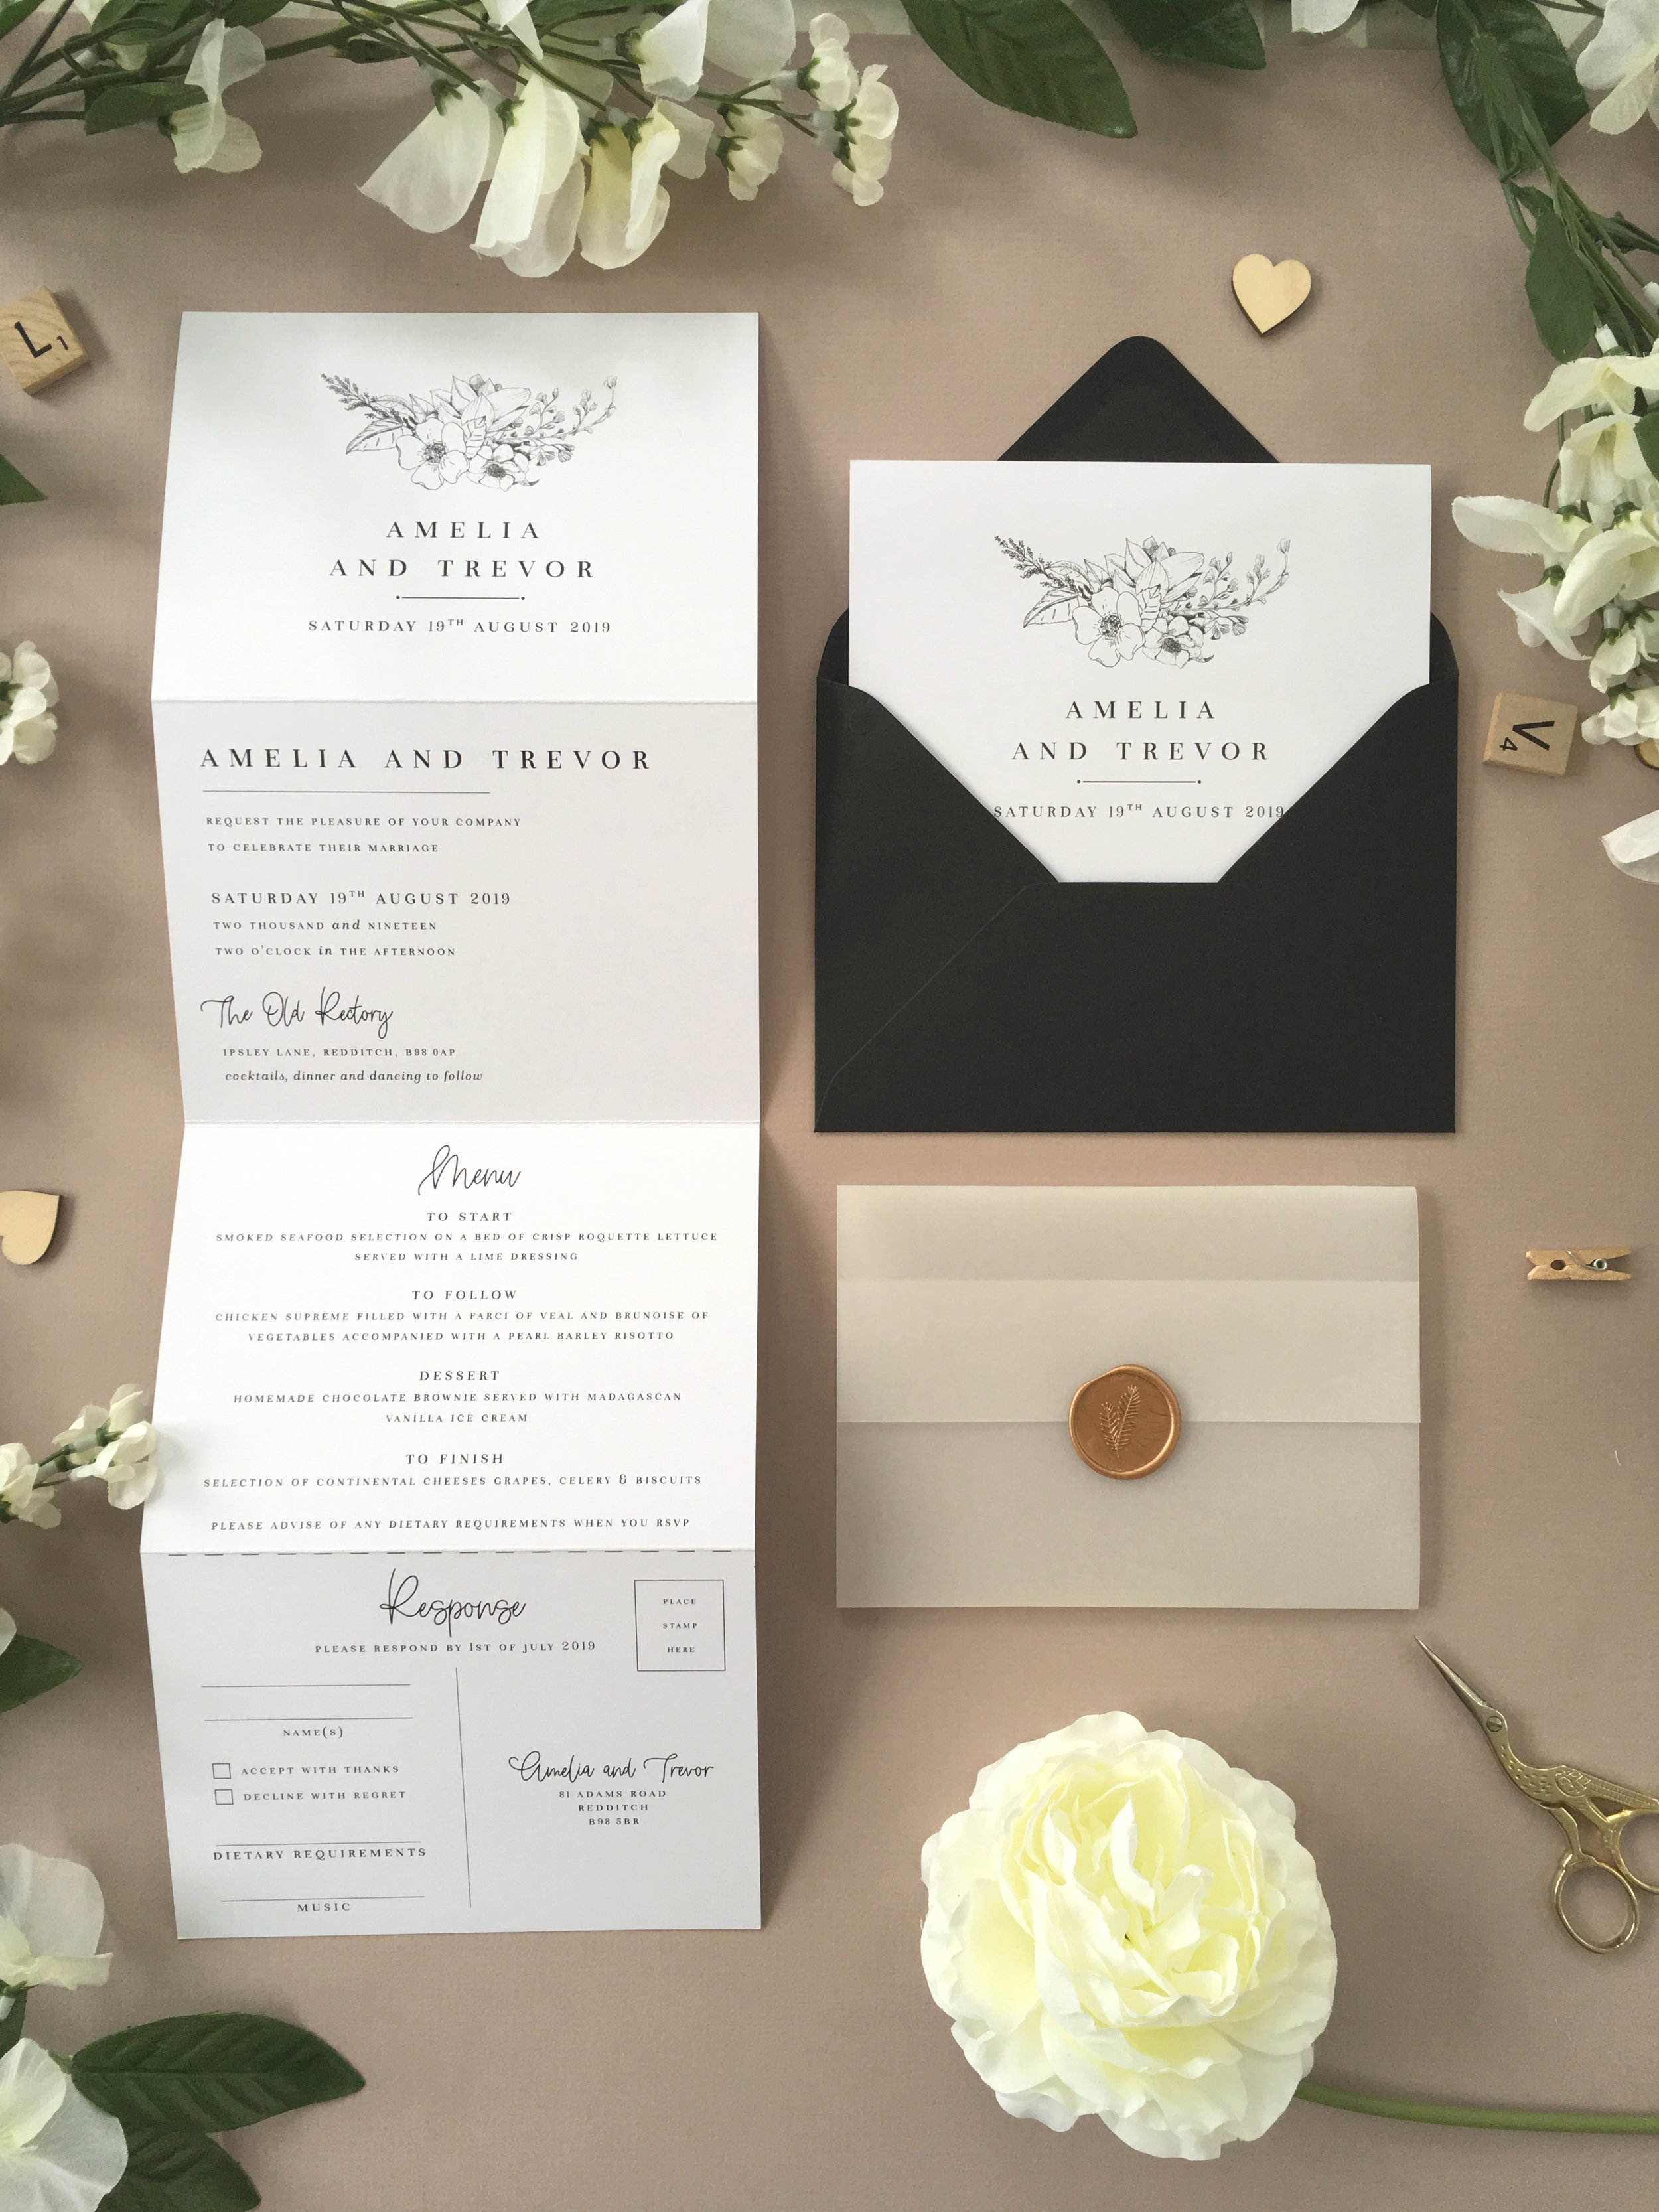 Green Park - Our Green Park collection uses subtle florals with simple, classical typography which looks beautifully elegant with this concertina wedding invitation.Our concertina invitations are a great all-in-one solution, with a detachable RSVP at the bottom of the invitation - all guests need to do is fill in their details, put a stamp in the corner and post!Concertina invitations can be provided on an as-is basis, or can be provided bound with a vellum jacket and timeless wax seal, or tied with ribbon or twine for a lovely hand-finished approach.- Concertina Invitation - from £1.95- Ribbon or Twine - £0.40- Vellum Jacket - £0.40- Wax Seal - £0.85 (Custom engraving also available)White envelope provided as standard with coloured upgrade available.